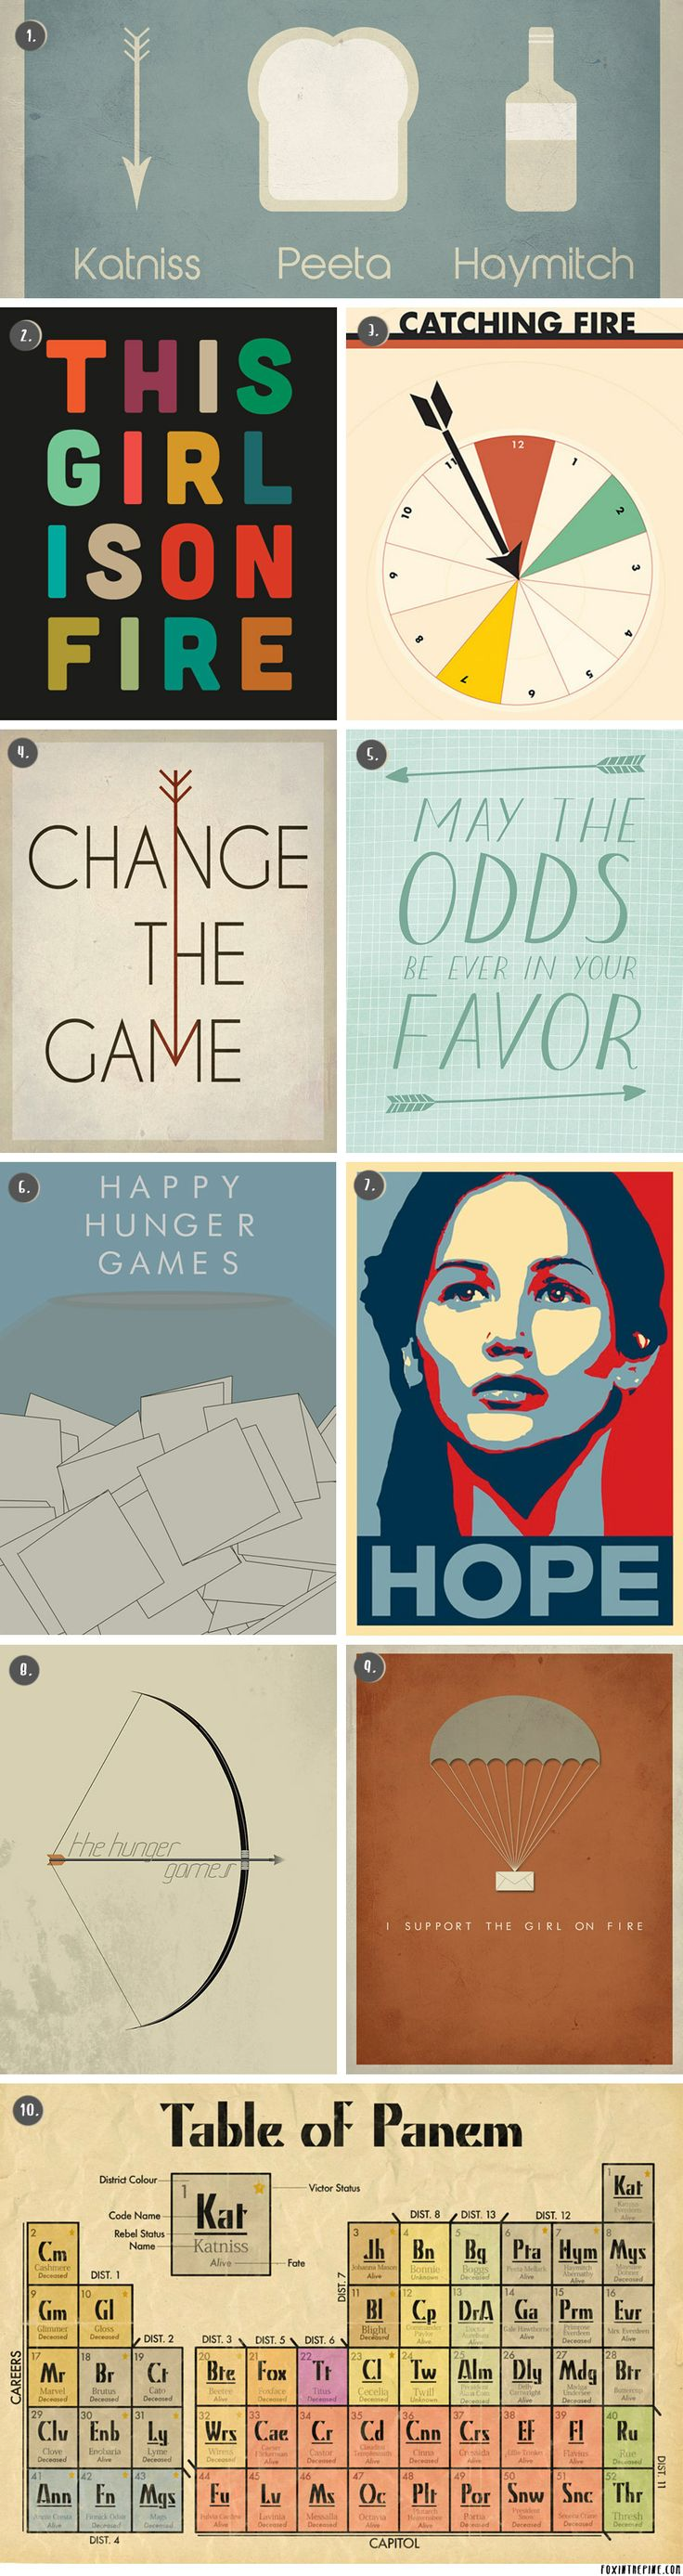 Hunger Games and Catching Fire Posters